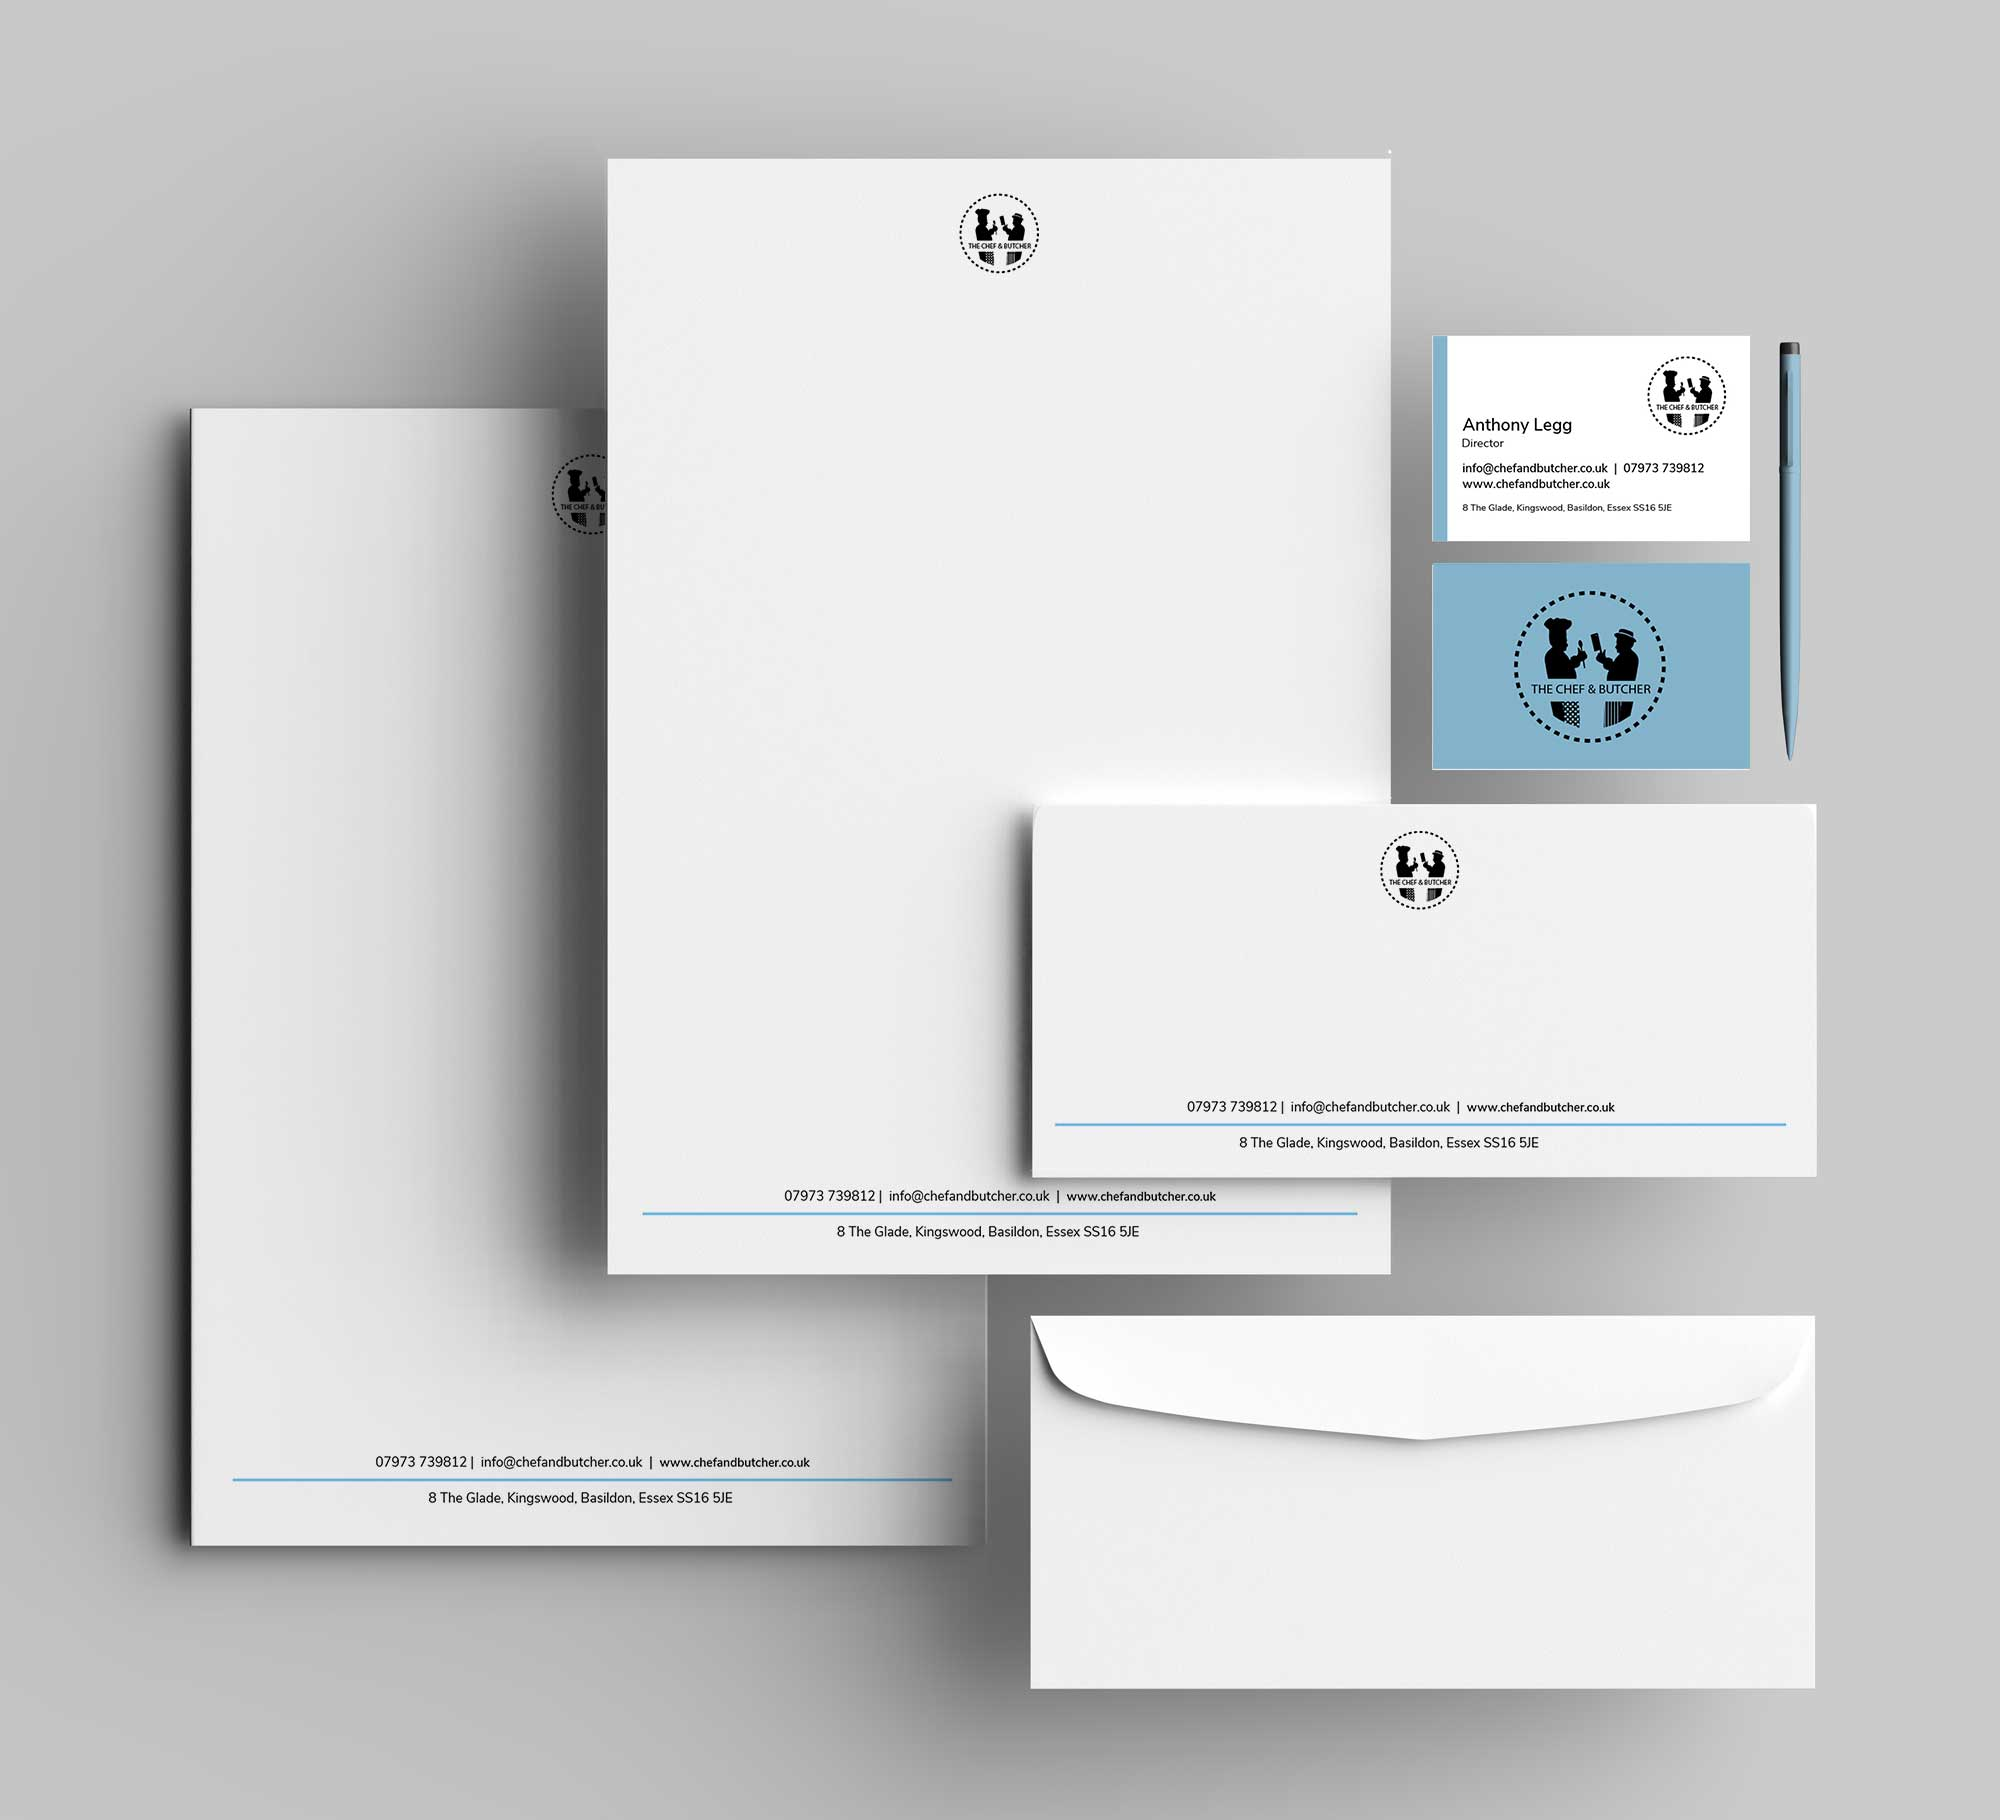 THE-CHEF-&-BUTCHER_stationery